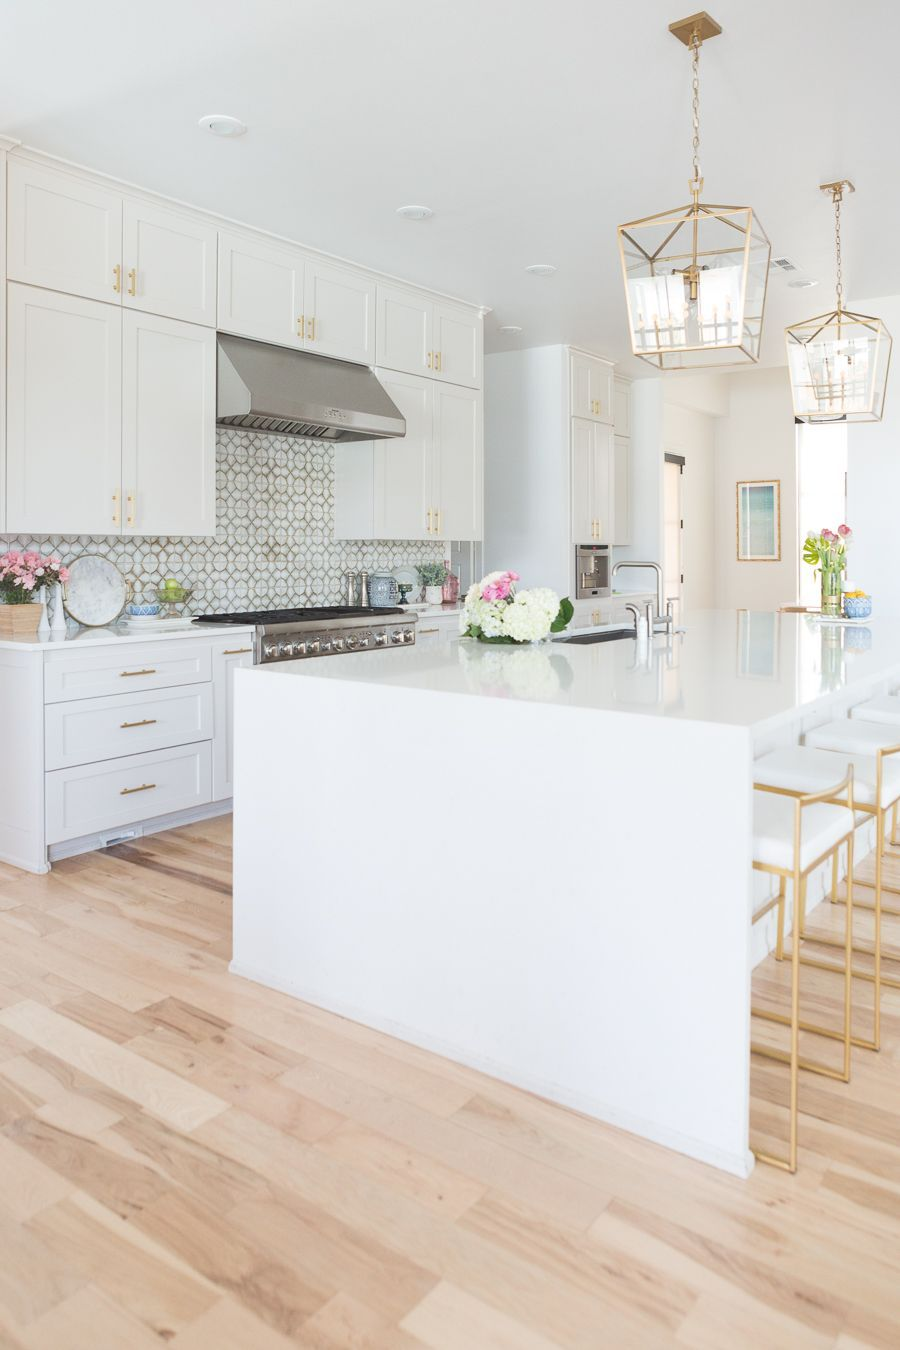 5 Large Kitchen Set Style Tips If Small Is Not The Choice White